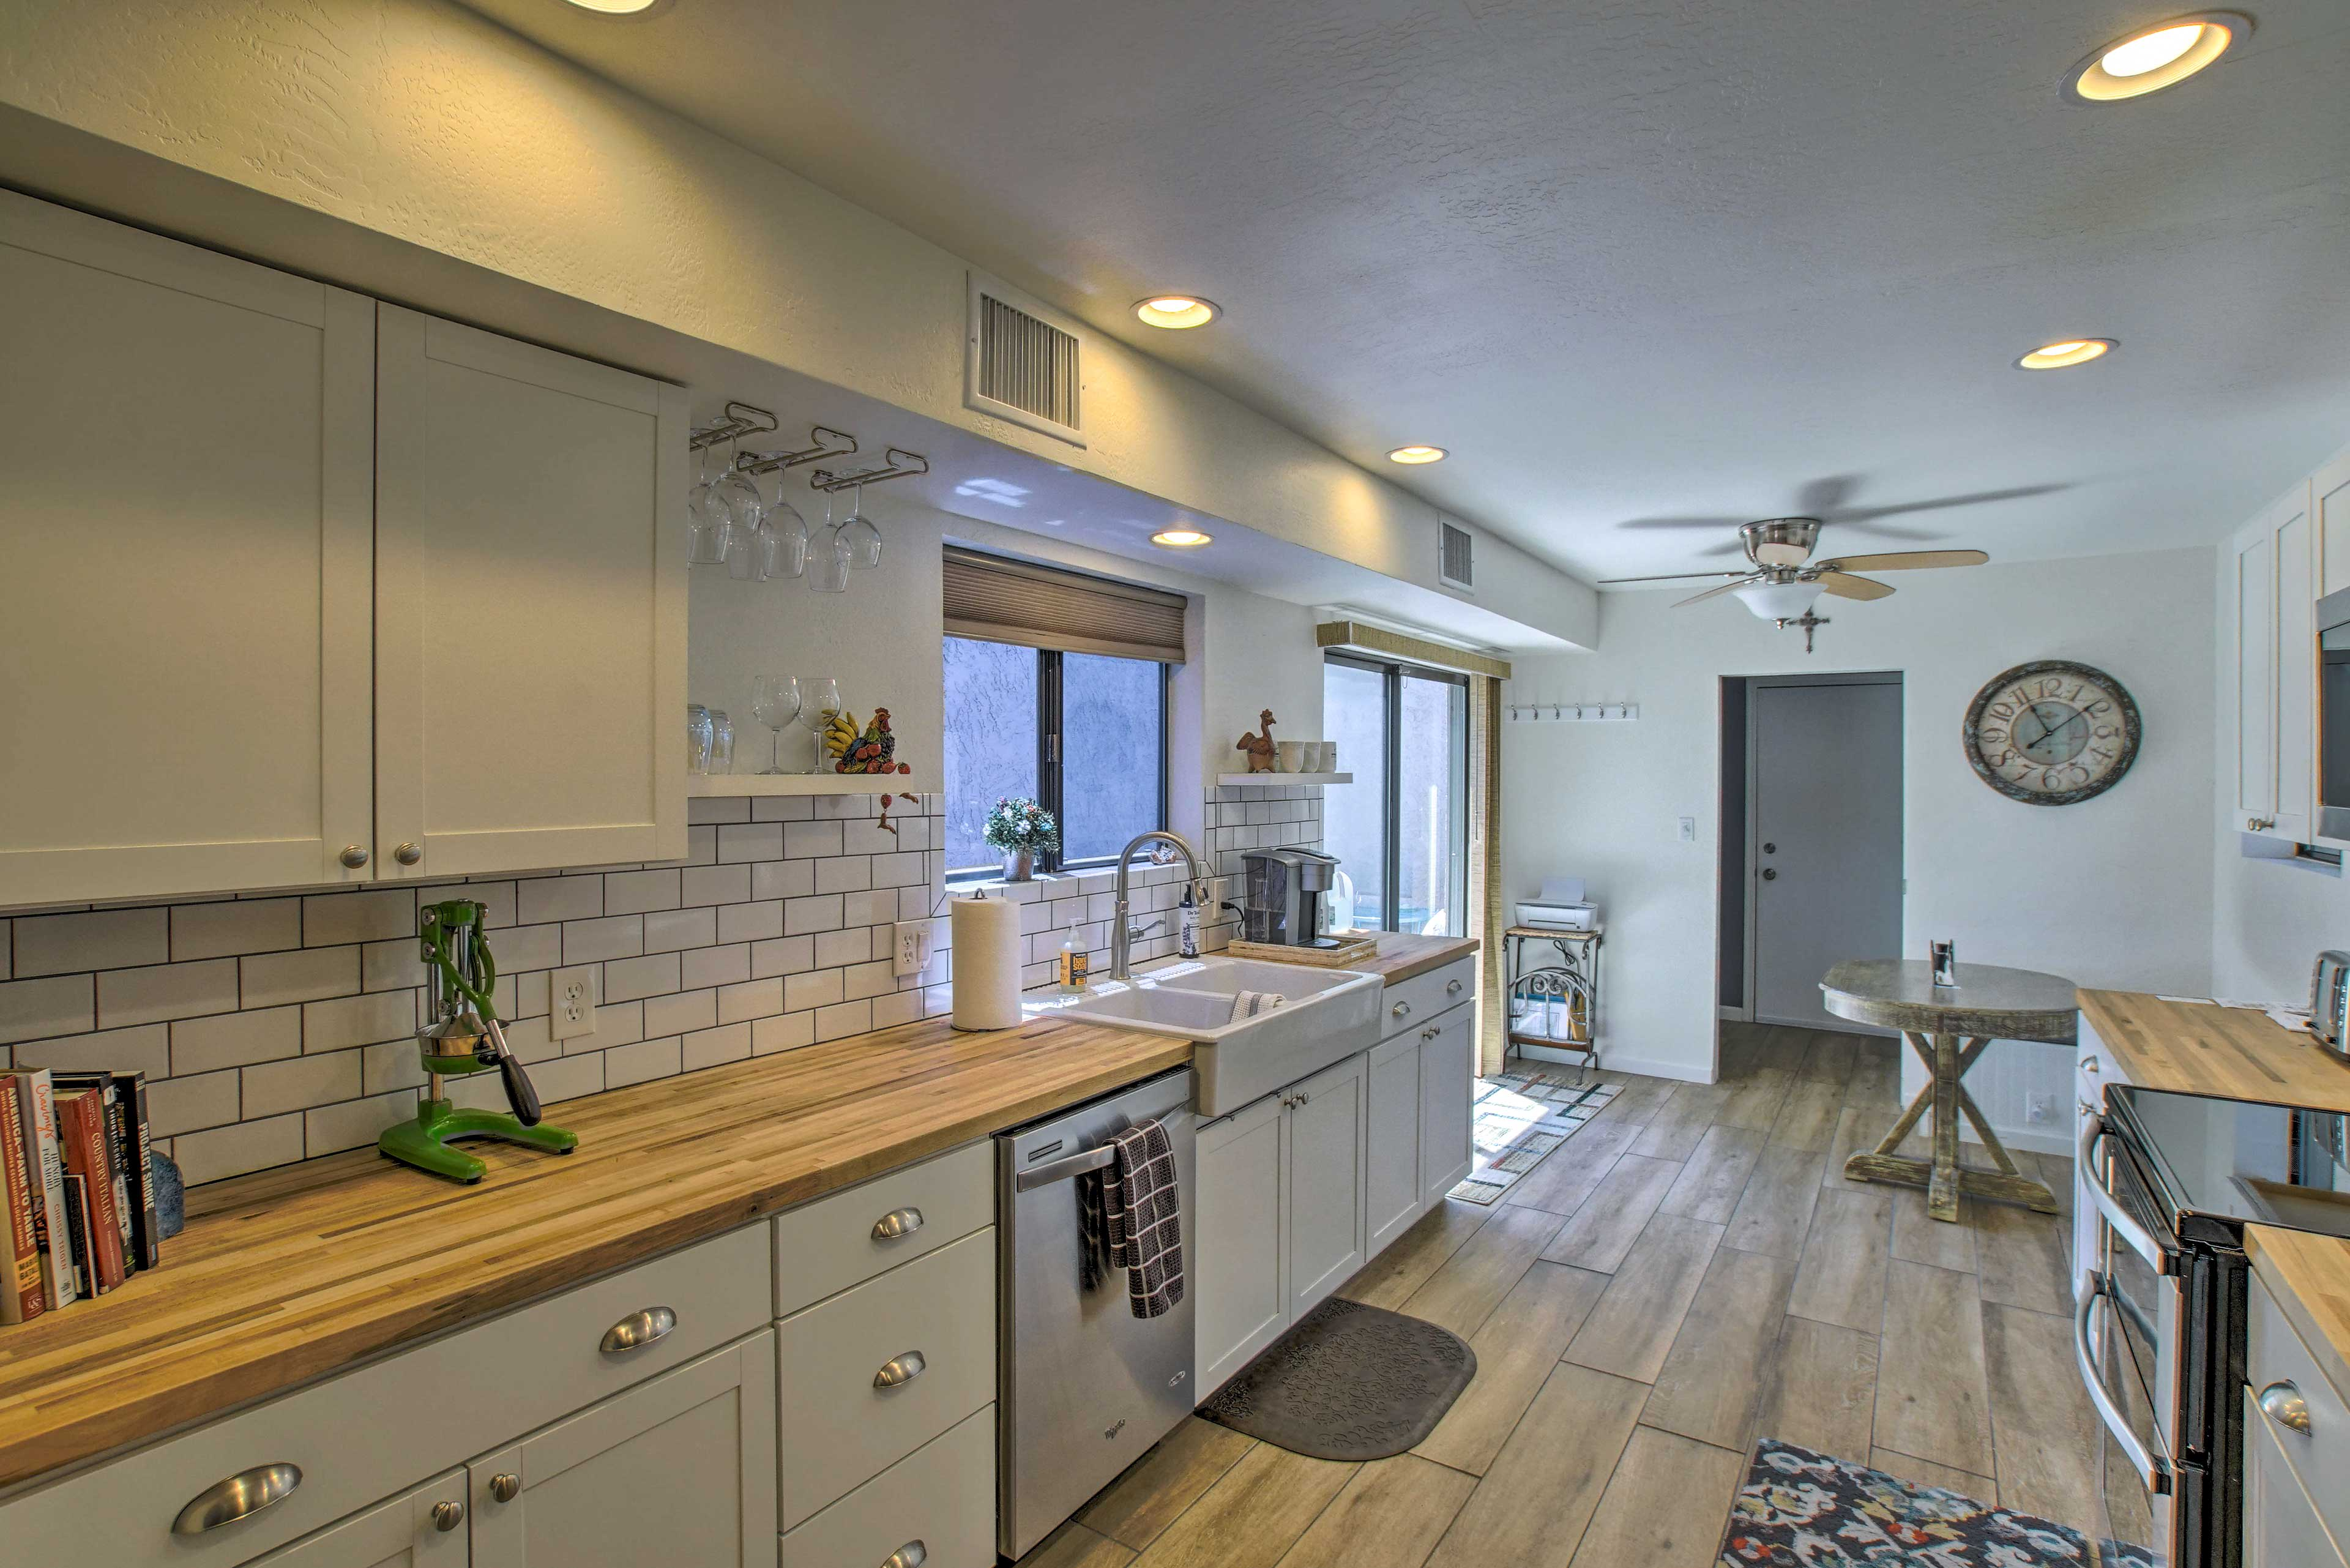 Butcher block counters and subway tiles elevate the kitchen.